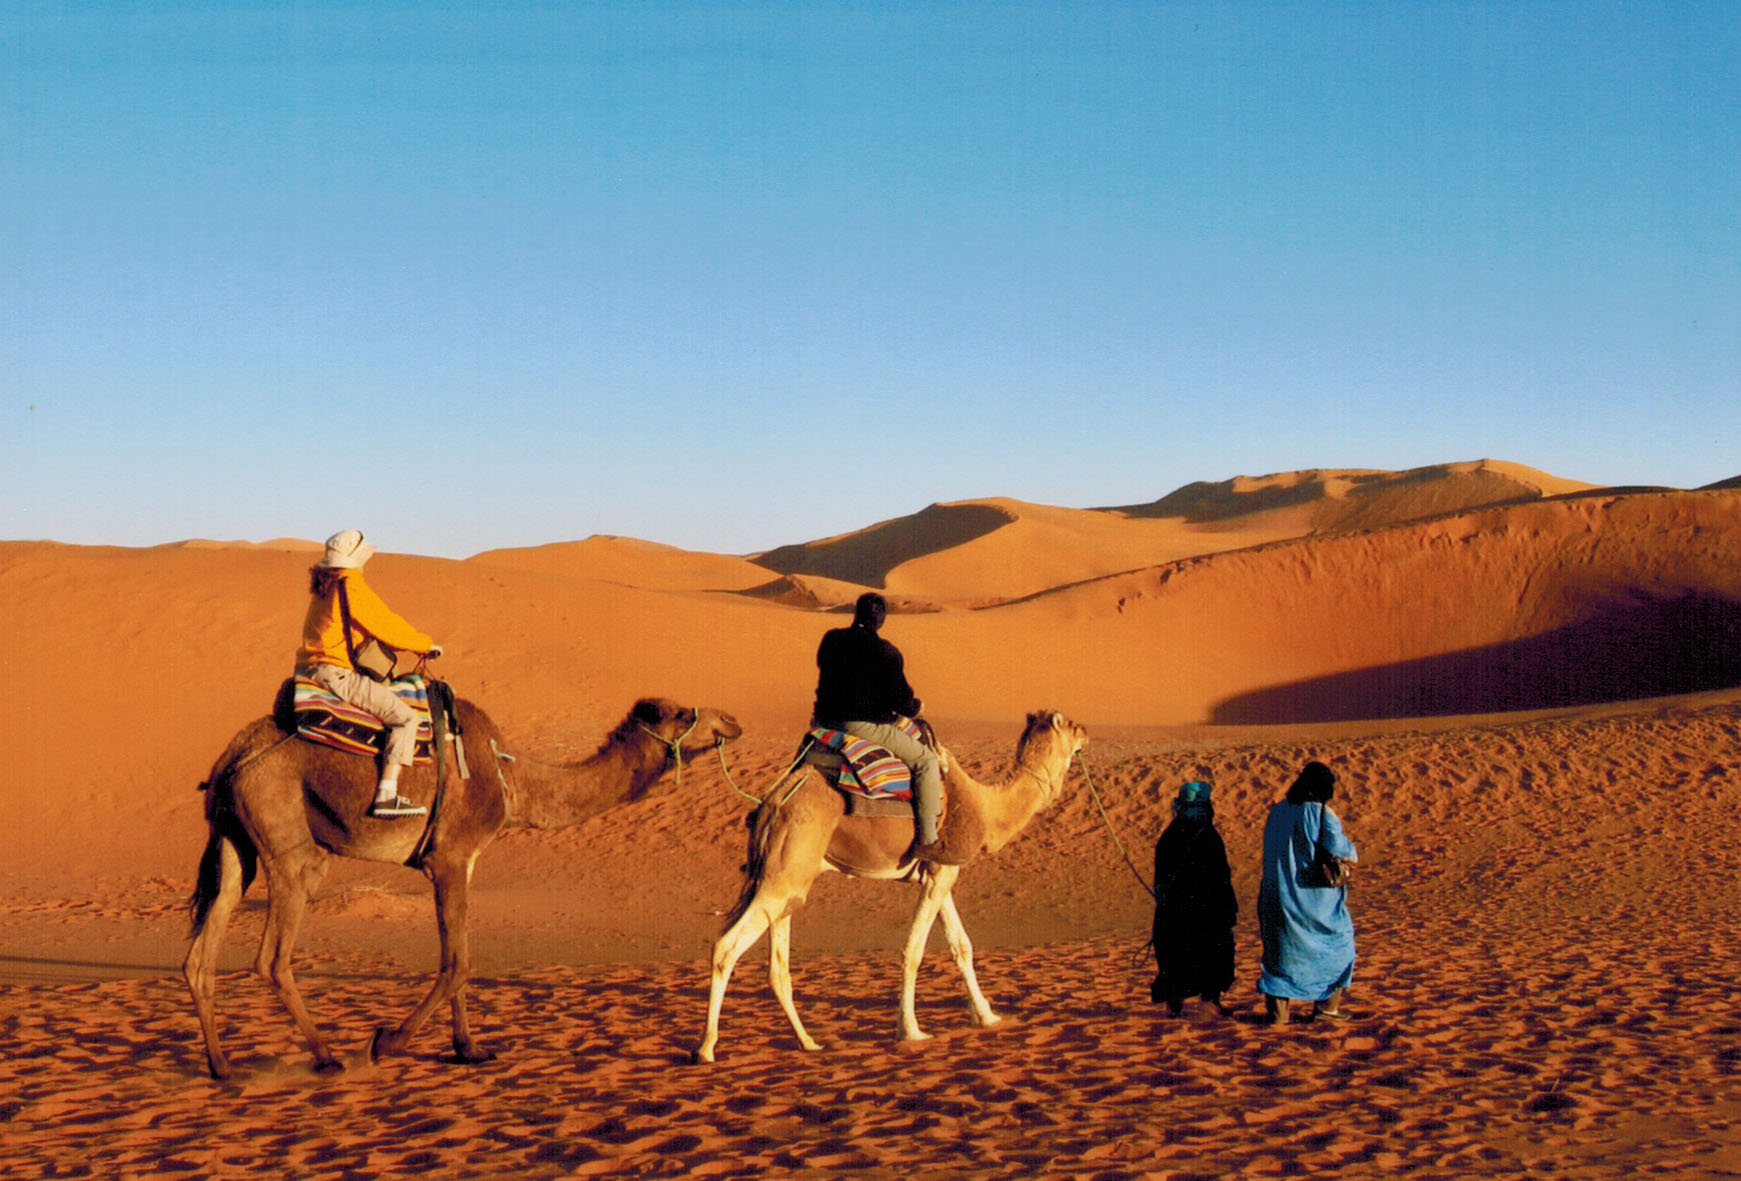 Berber-guided camel ride through the desert in Morocco